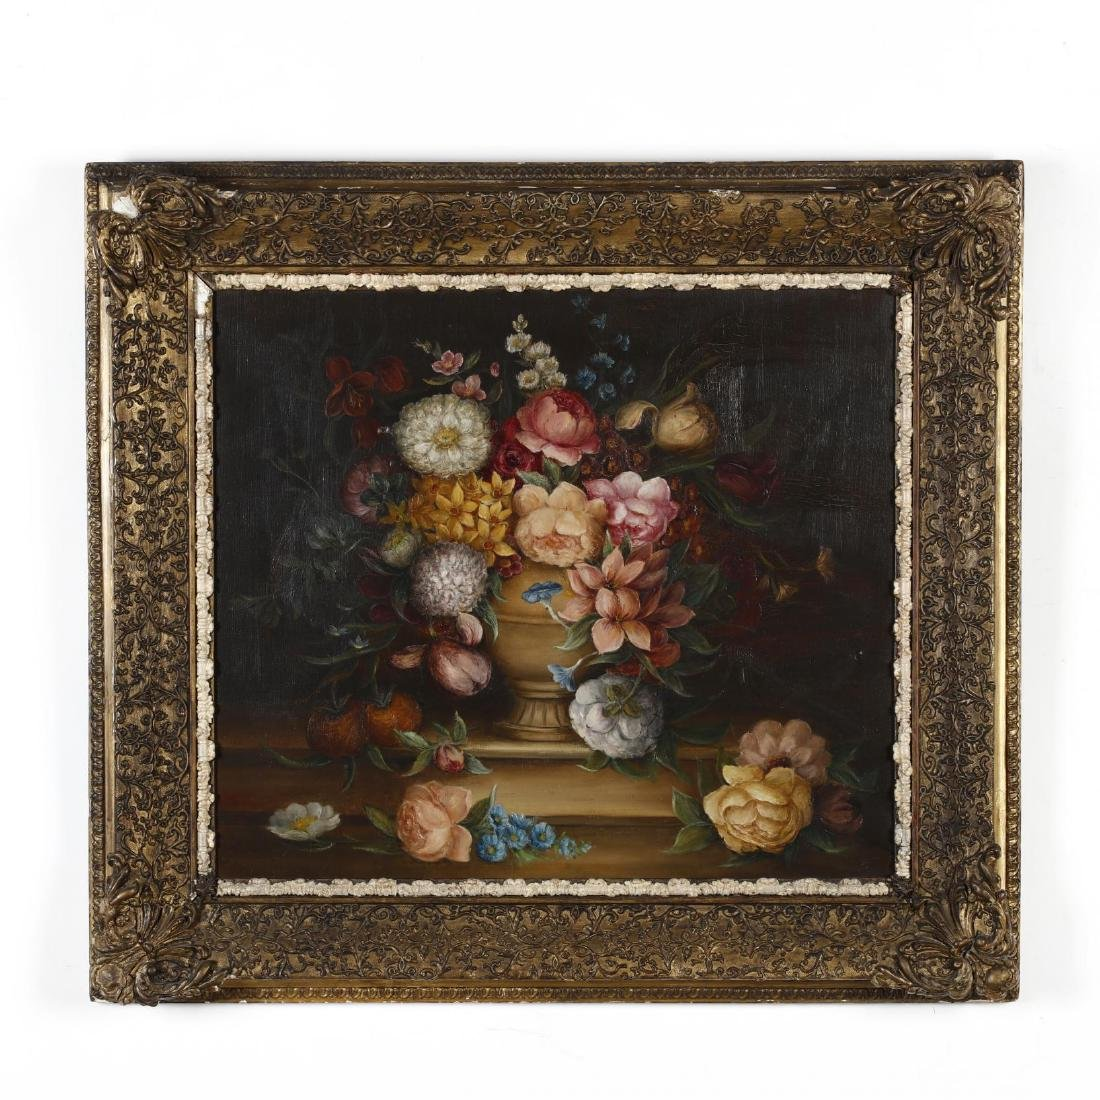 An Antique Continental School Still Life with Flowers